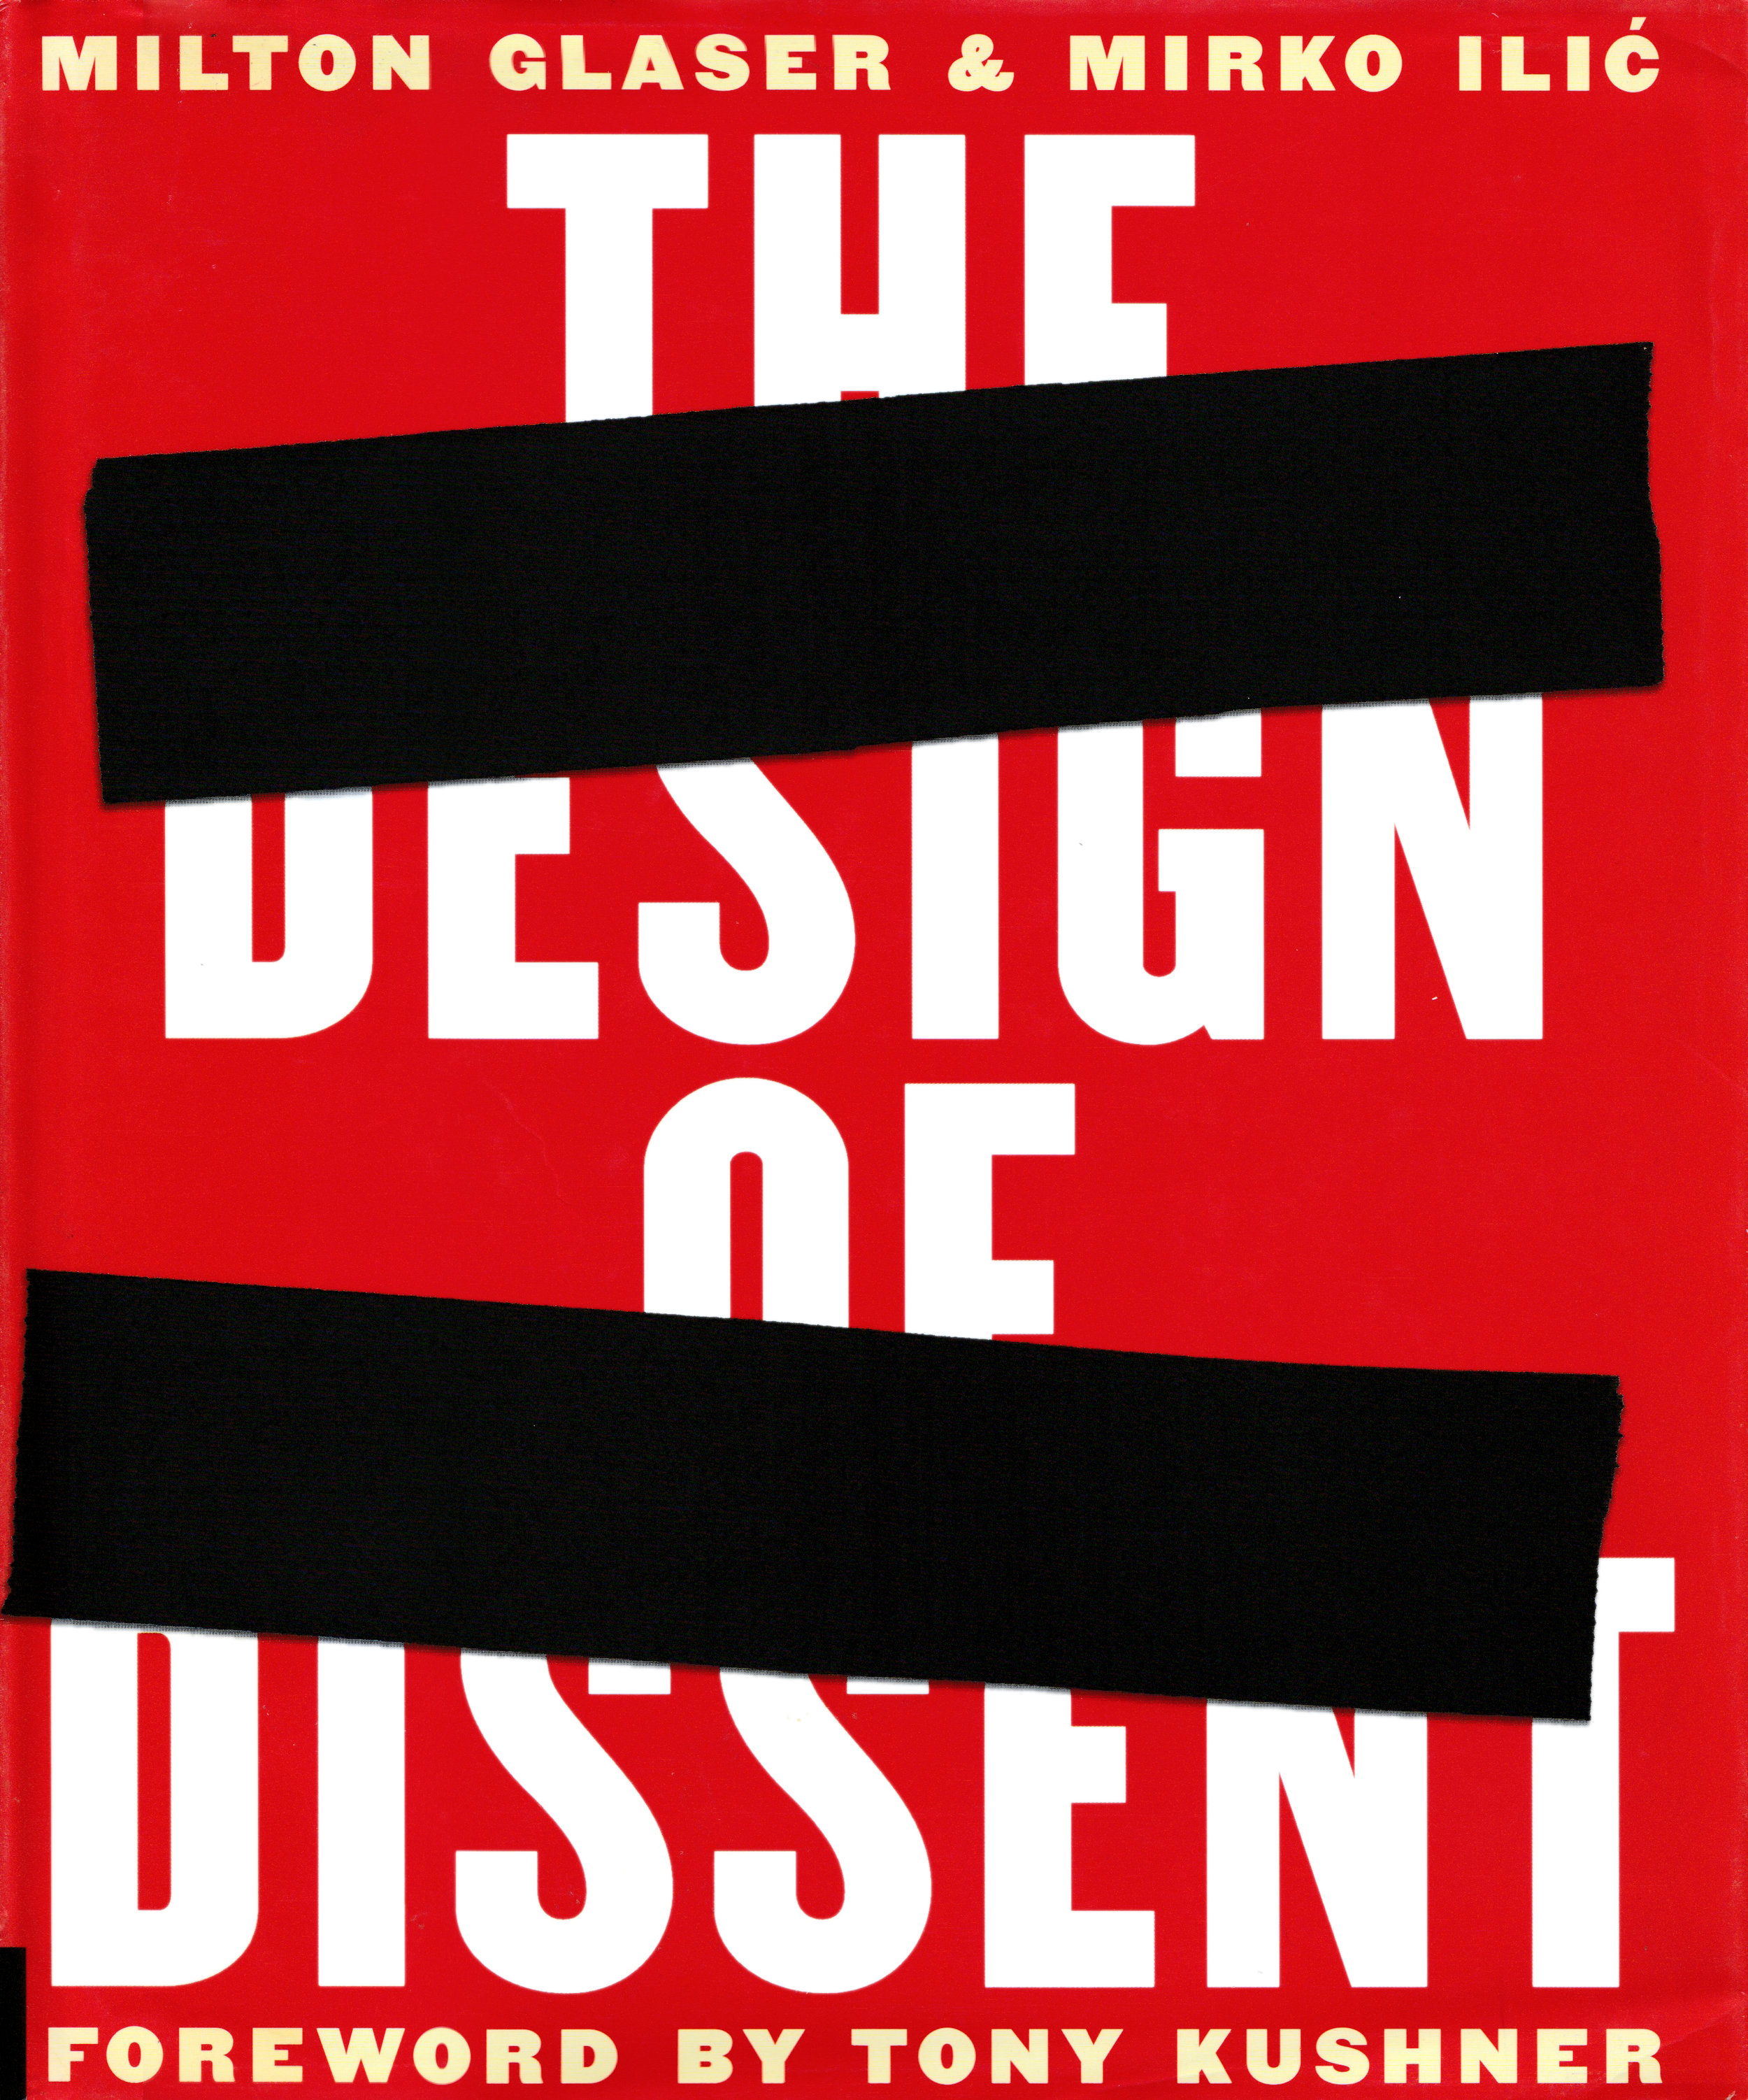 - The Design of Dissent: Socially and Politically Driven Graphics from the 1960's till todayRockport Publishing, 2005by Milton Glaser and Mirko Ilic Hard cover9.5 x 1 x 11.2 inches296 pagesLanguage: EnglishISBN-10: 1631594249Dissent is an essential part of keeping democratic societies healthy, and our ability as citizens to voice our opinion is not only our privilege but our responsibility. Without this dialogue, the backbone of what we have fought so desperately for could easily crumble.Over the past several decades, we have seen the number of democratic societies around the globe increase, and during the past ten years, there has been a heightened awareness of the increasing conflicts and problems that both directly and indirectly affect our everyday lives. With the Middle East never ending conflict, the war on terrorism, and the numerous financial and environmental crises, peopleÆs sense of safety, power, and representation has diminished in part because they feel they have no voice.Designers, however, have used their skills to communicate their dissent throughout history and are doing so even more now with the birth of the Web and the increasing ease of distributing posters and other printed materials. A picture is worth a thousand words and designers have used this adage to their advantage by creating simple yet powerful designs that immediately convey poignant messages to their viewers. The Design of Dissent will examine graphic work focusing on social and political concerns from around the globe. The time is certainly ripe as the U.S. -- and world - flare in opposition on so many important issues.